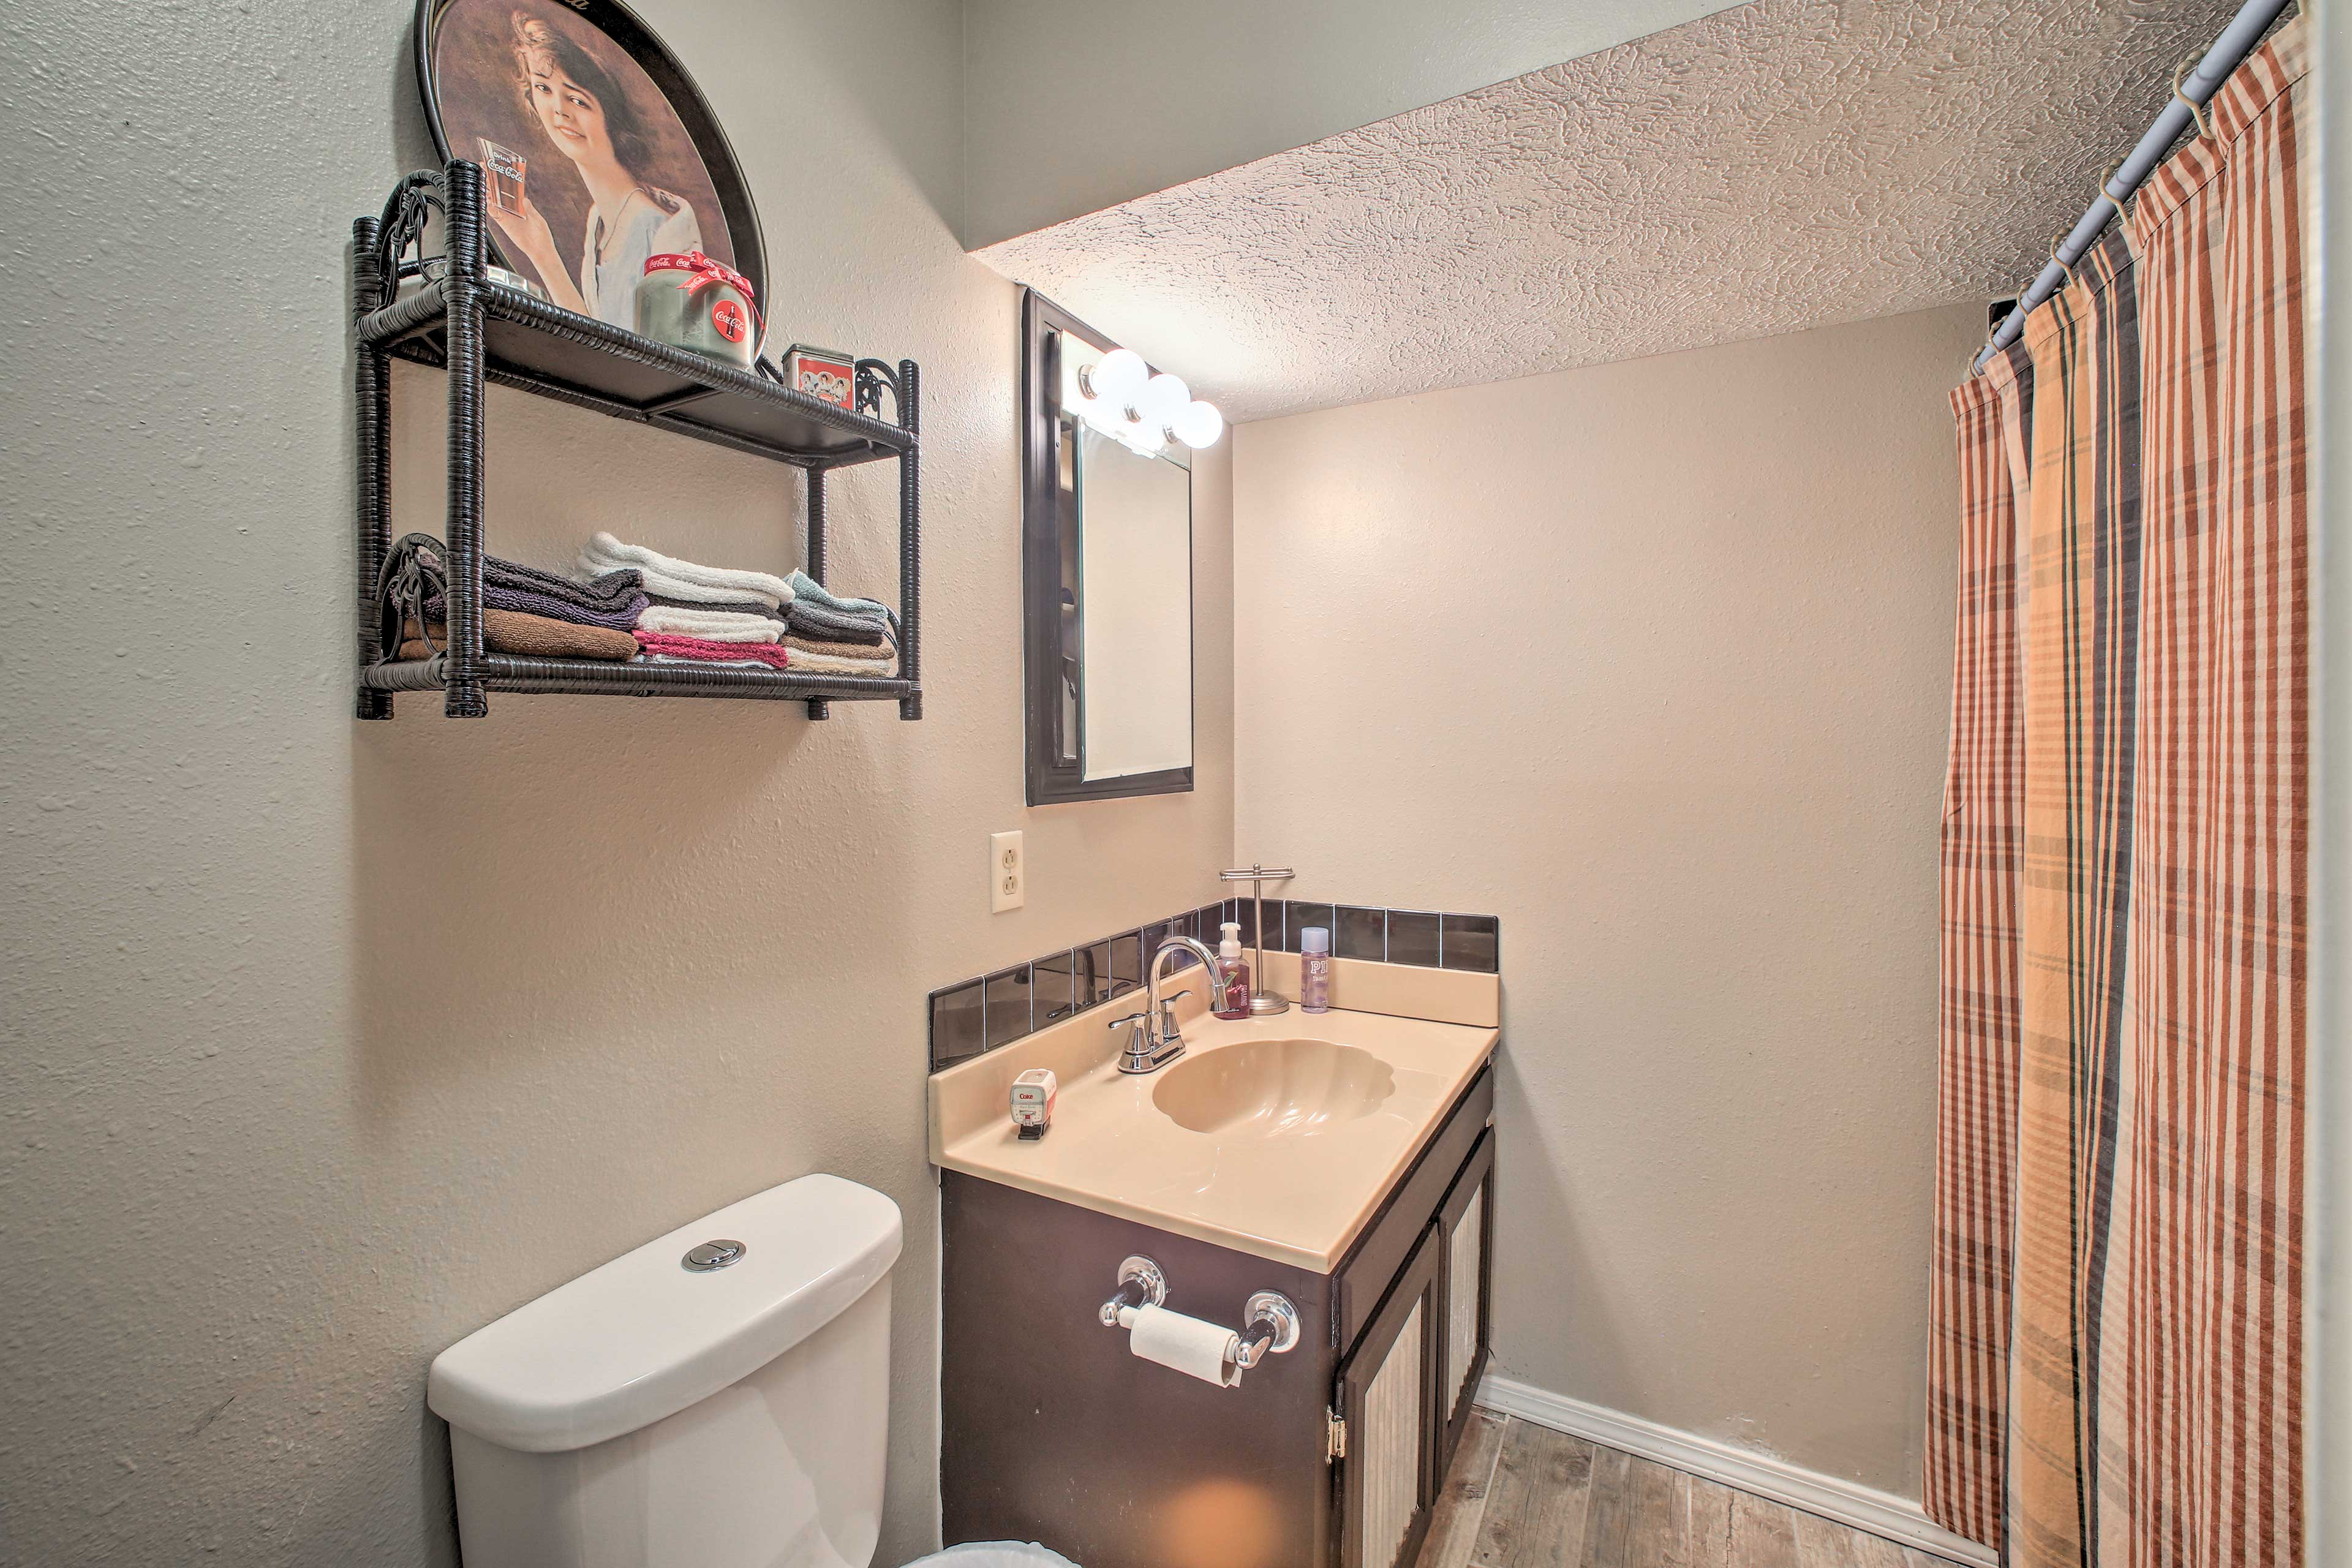 The second bathroom is also a full.